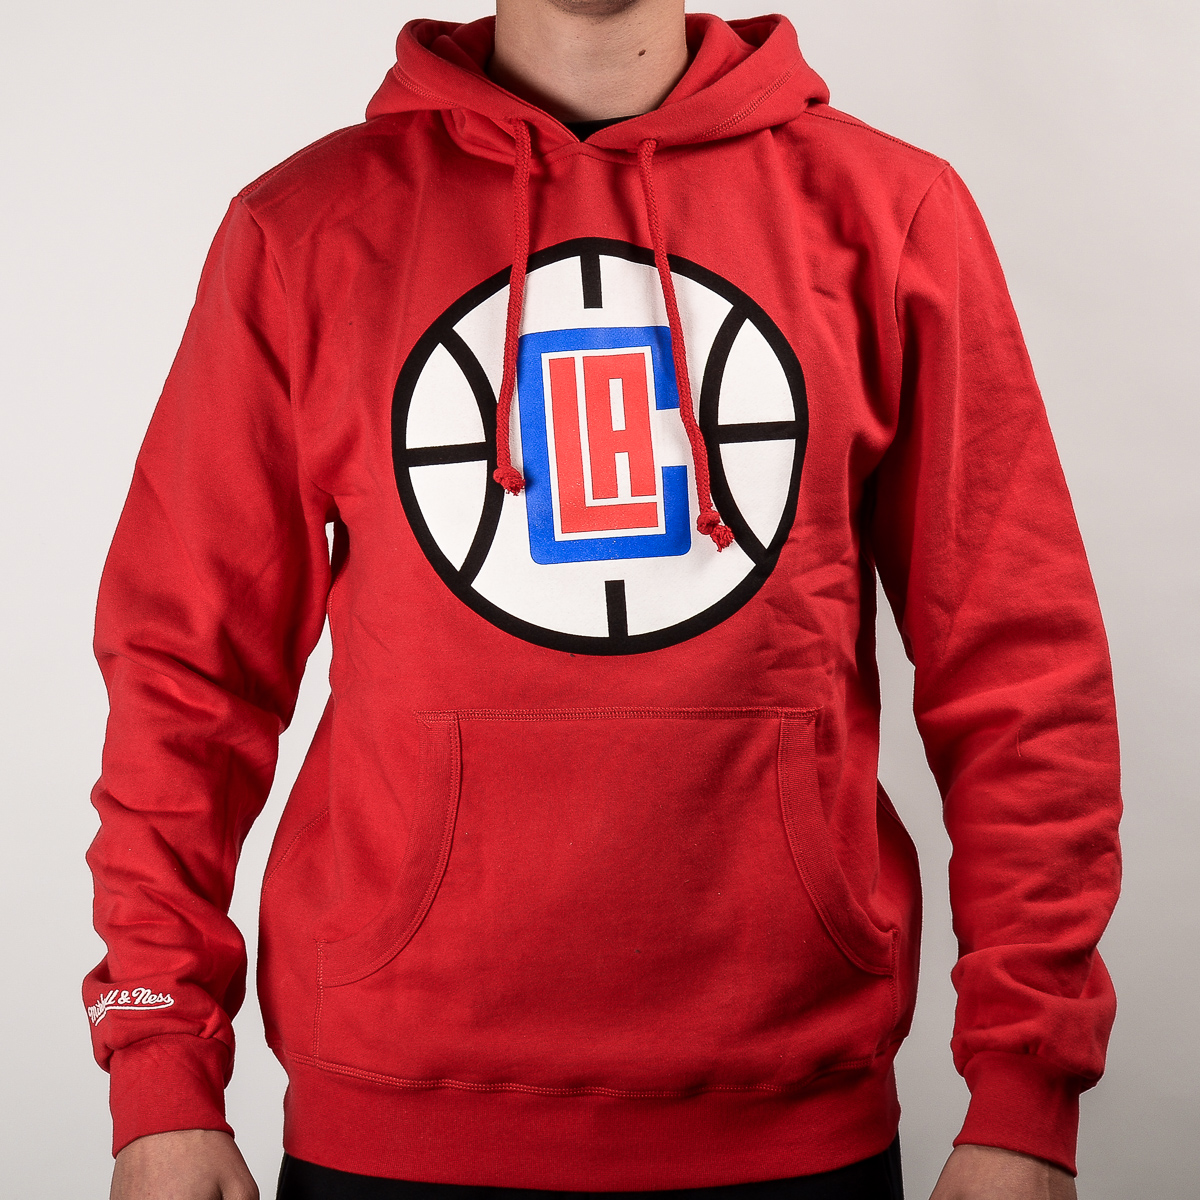 low priced bacd8 d6128 Mitchell & Ness NBA Los Angeles Clippers Team Logo Hoody ...